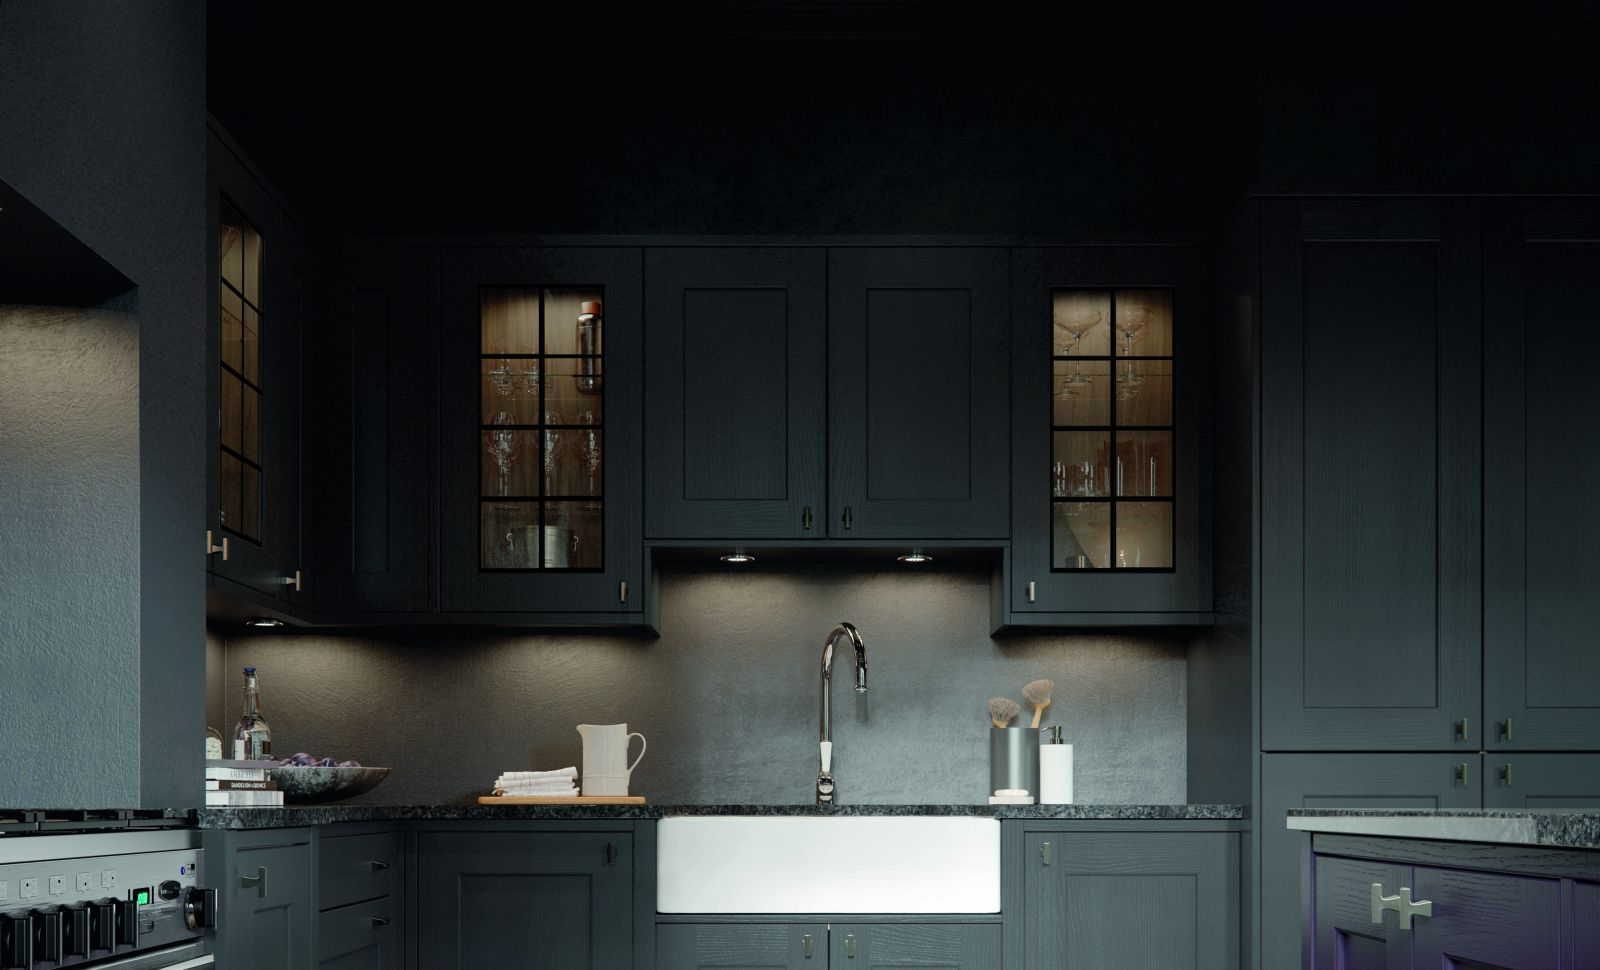 Asbourne by Masterclass Kitchens - Georgian Style Glass Cabinets in a Shaker Style Kitchen